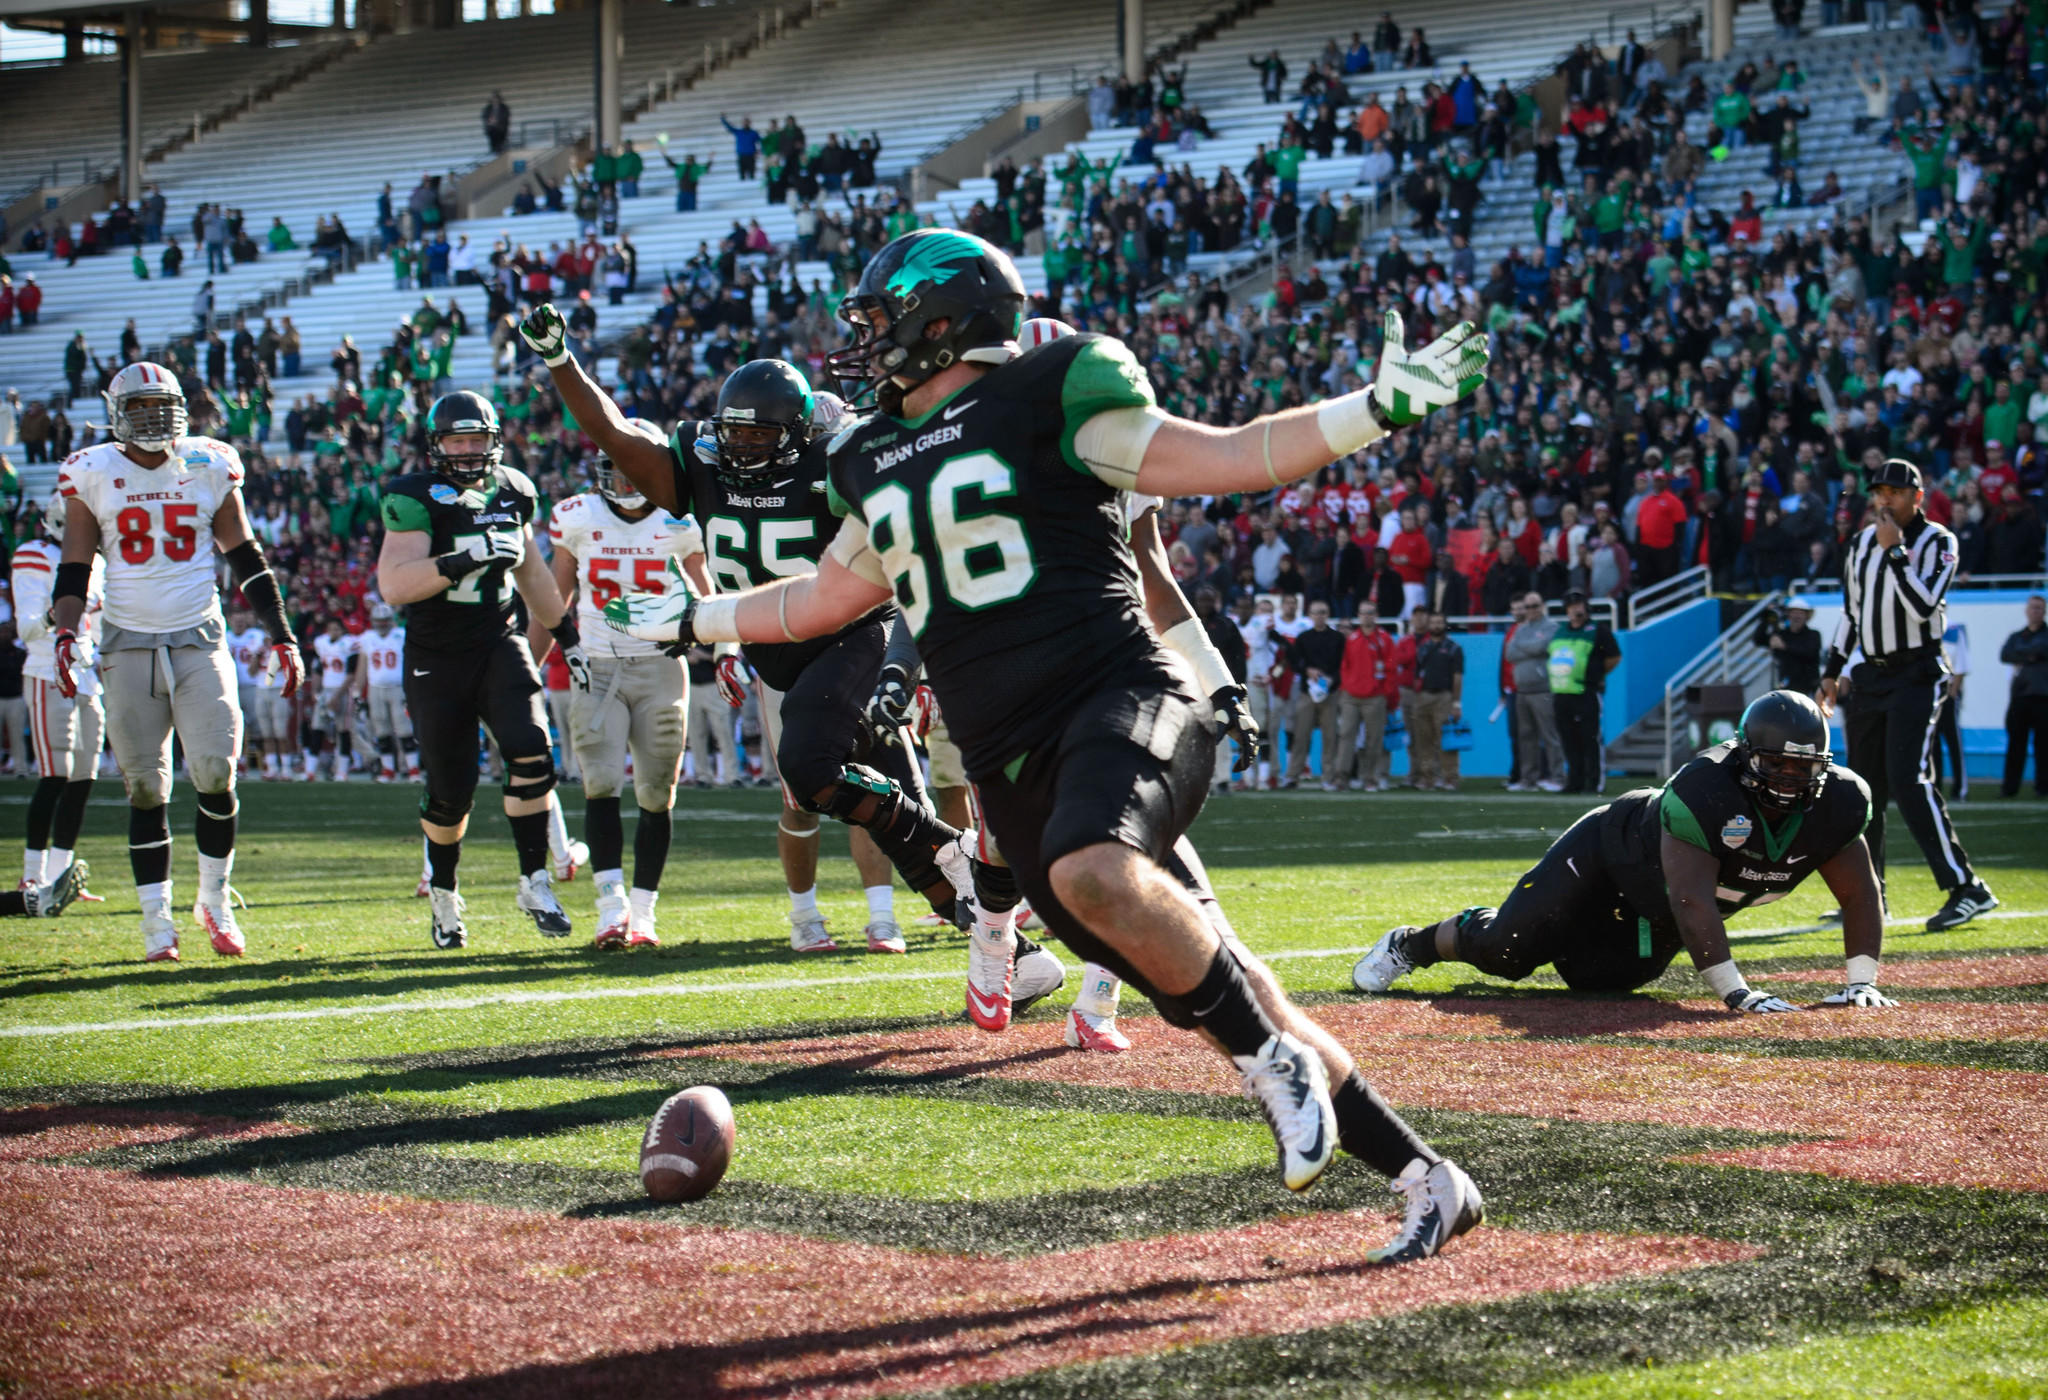 North Texas' Drew Miller scores a two-point conversion against UNLV during the second half at the Cotton Bowl Stadium.